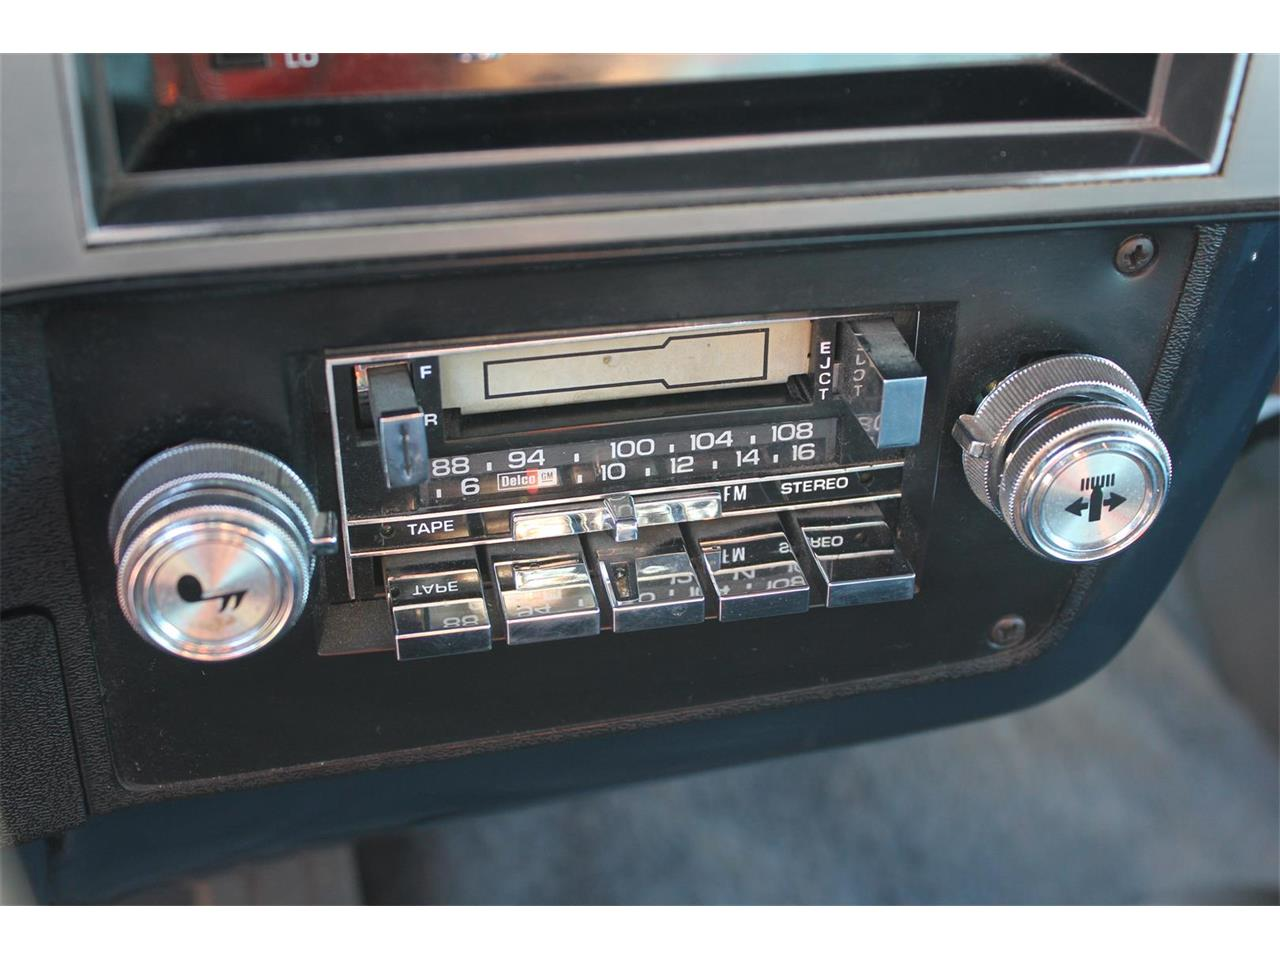 Large Picture of '87 Suburban - $14,900.00 Offered by Texas Trucks and Classics - MBK7